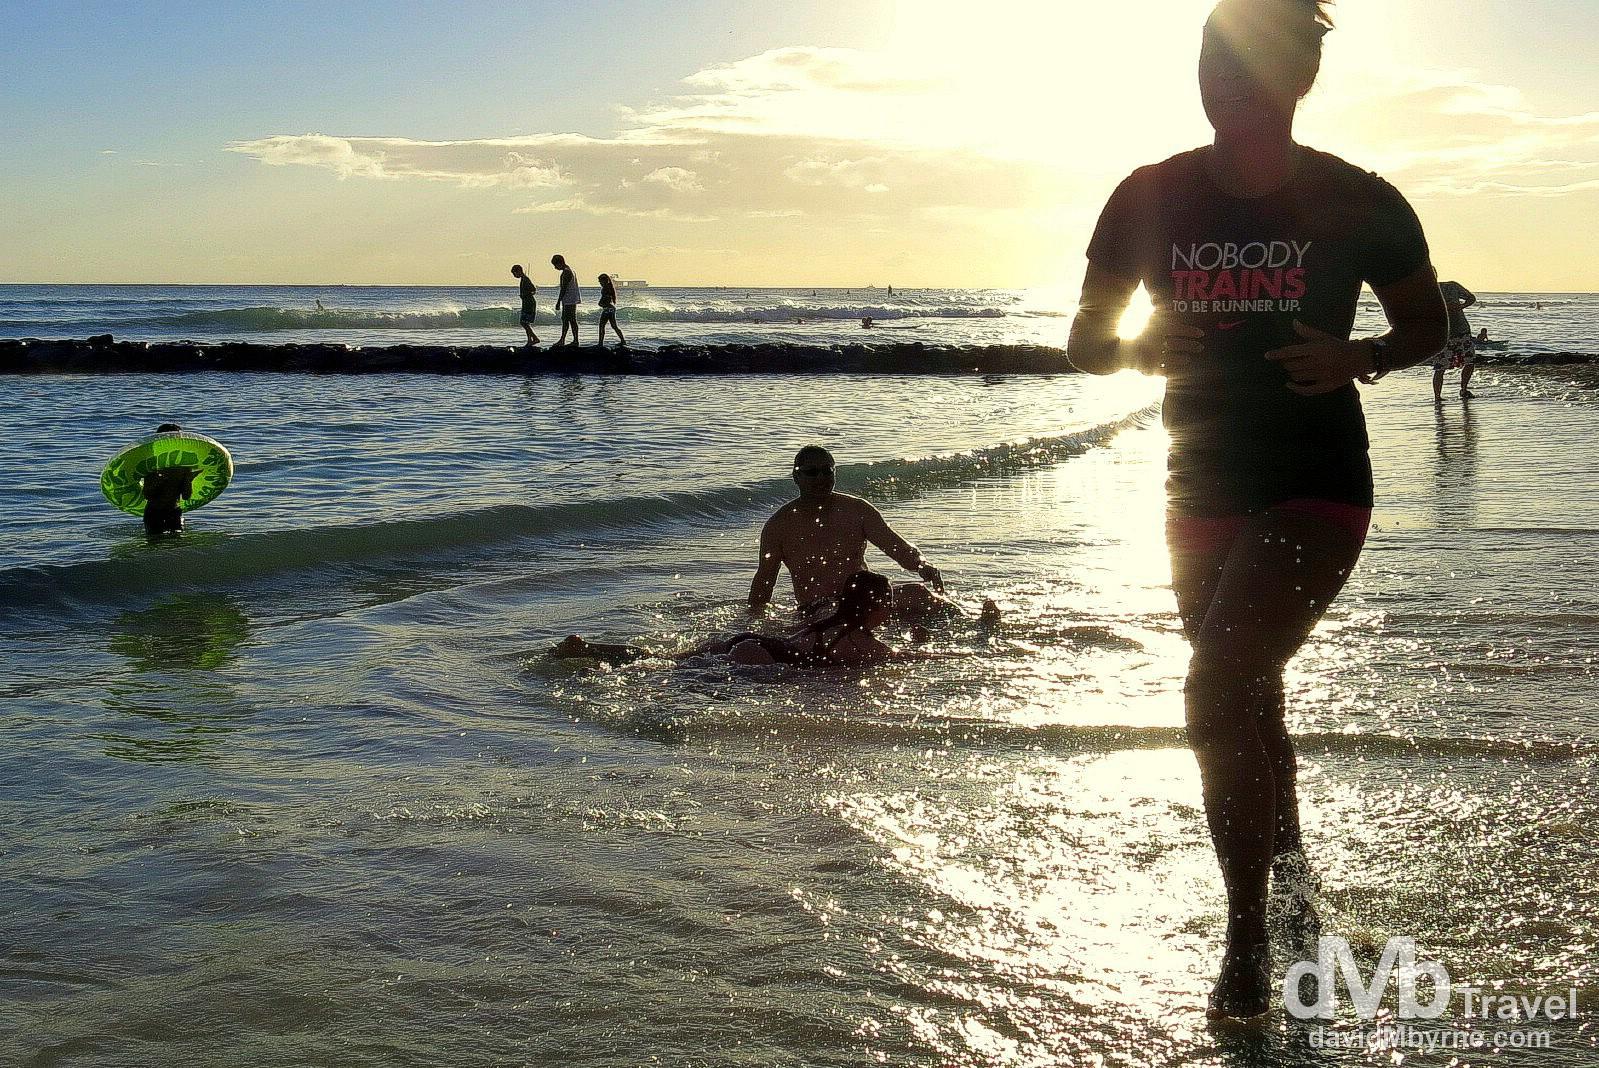 Nobody Trains To Be Runner Up. Late afternoon activity on Waikiki Beach, O'ahu, Hawaii. February 26th 2013.